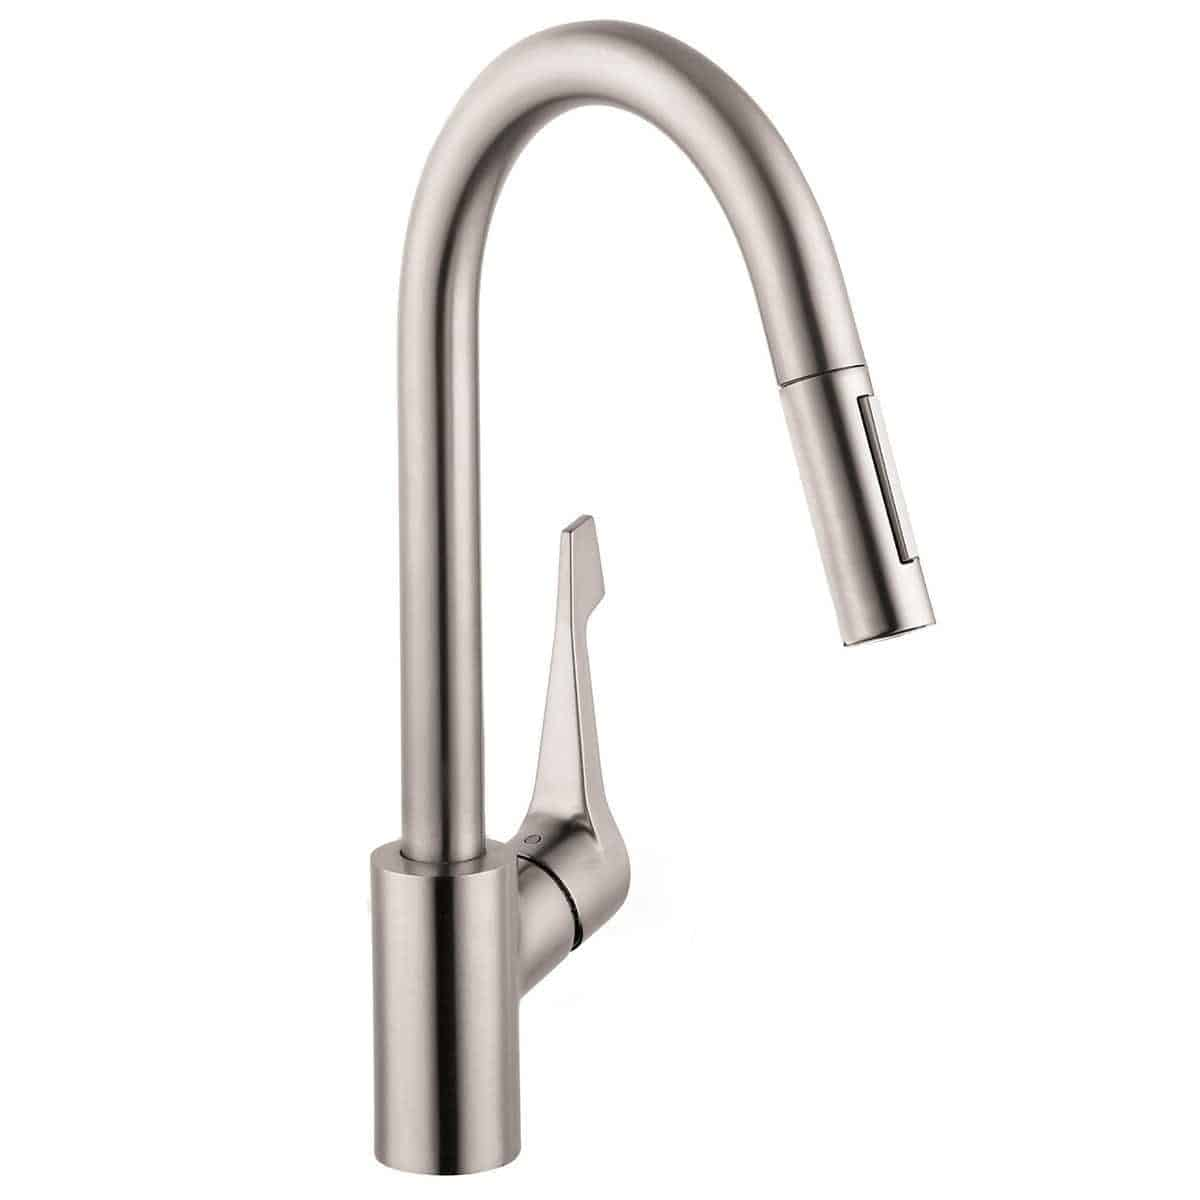 Hansgrohe Cento Kitchen Faucet Thervgeeks